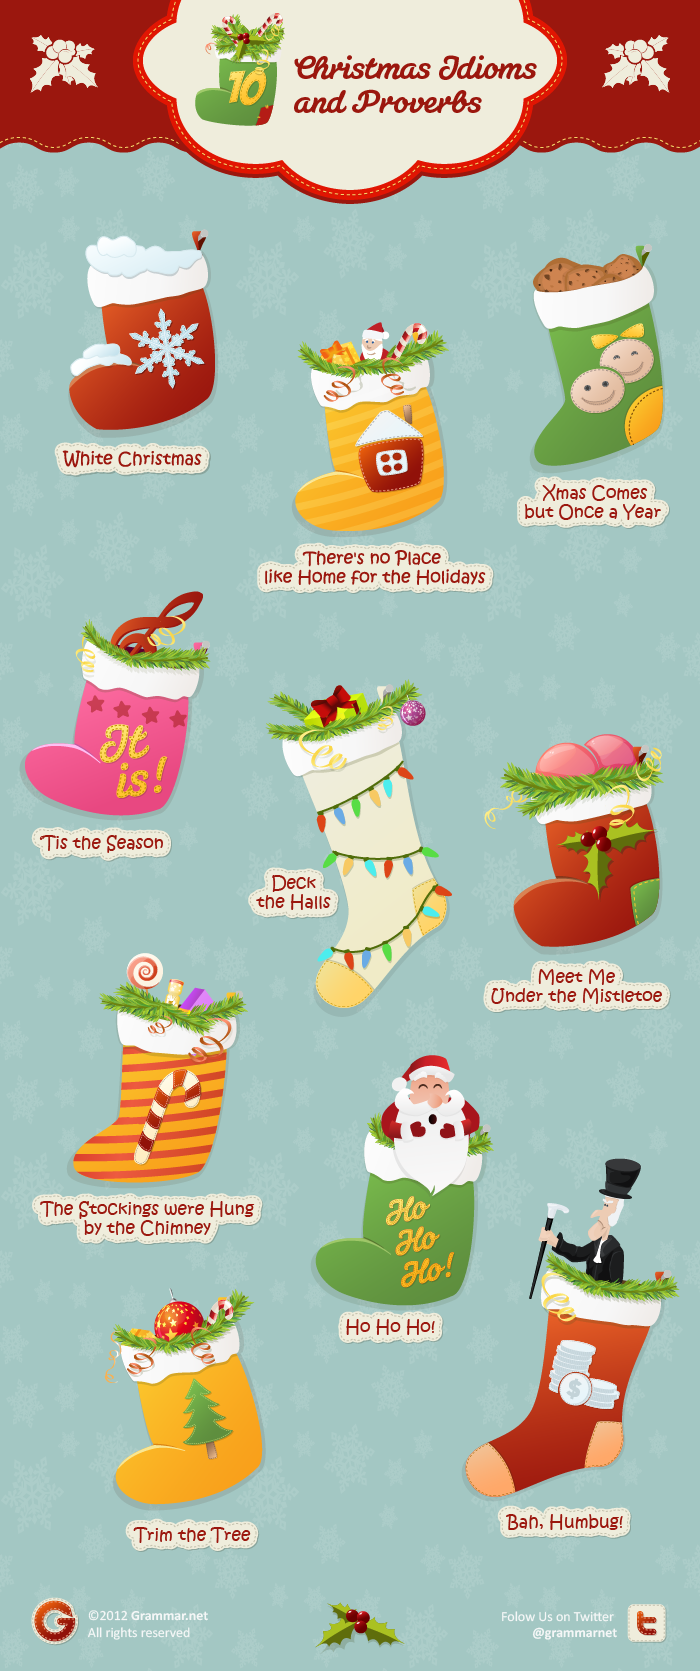 the christmas idioms and phrases infographic presents 10 commonly used holiday idioms and phrases - Christmas Idioms